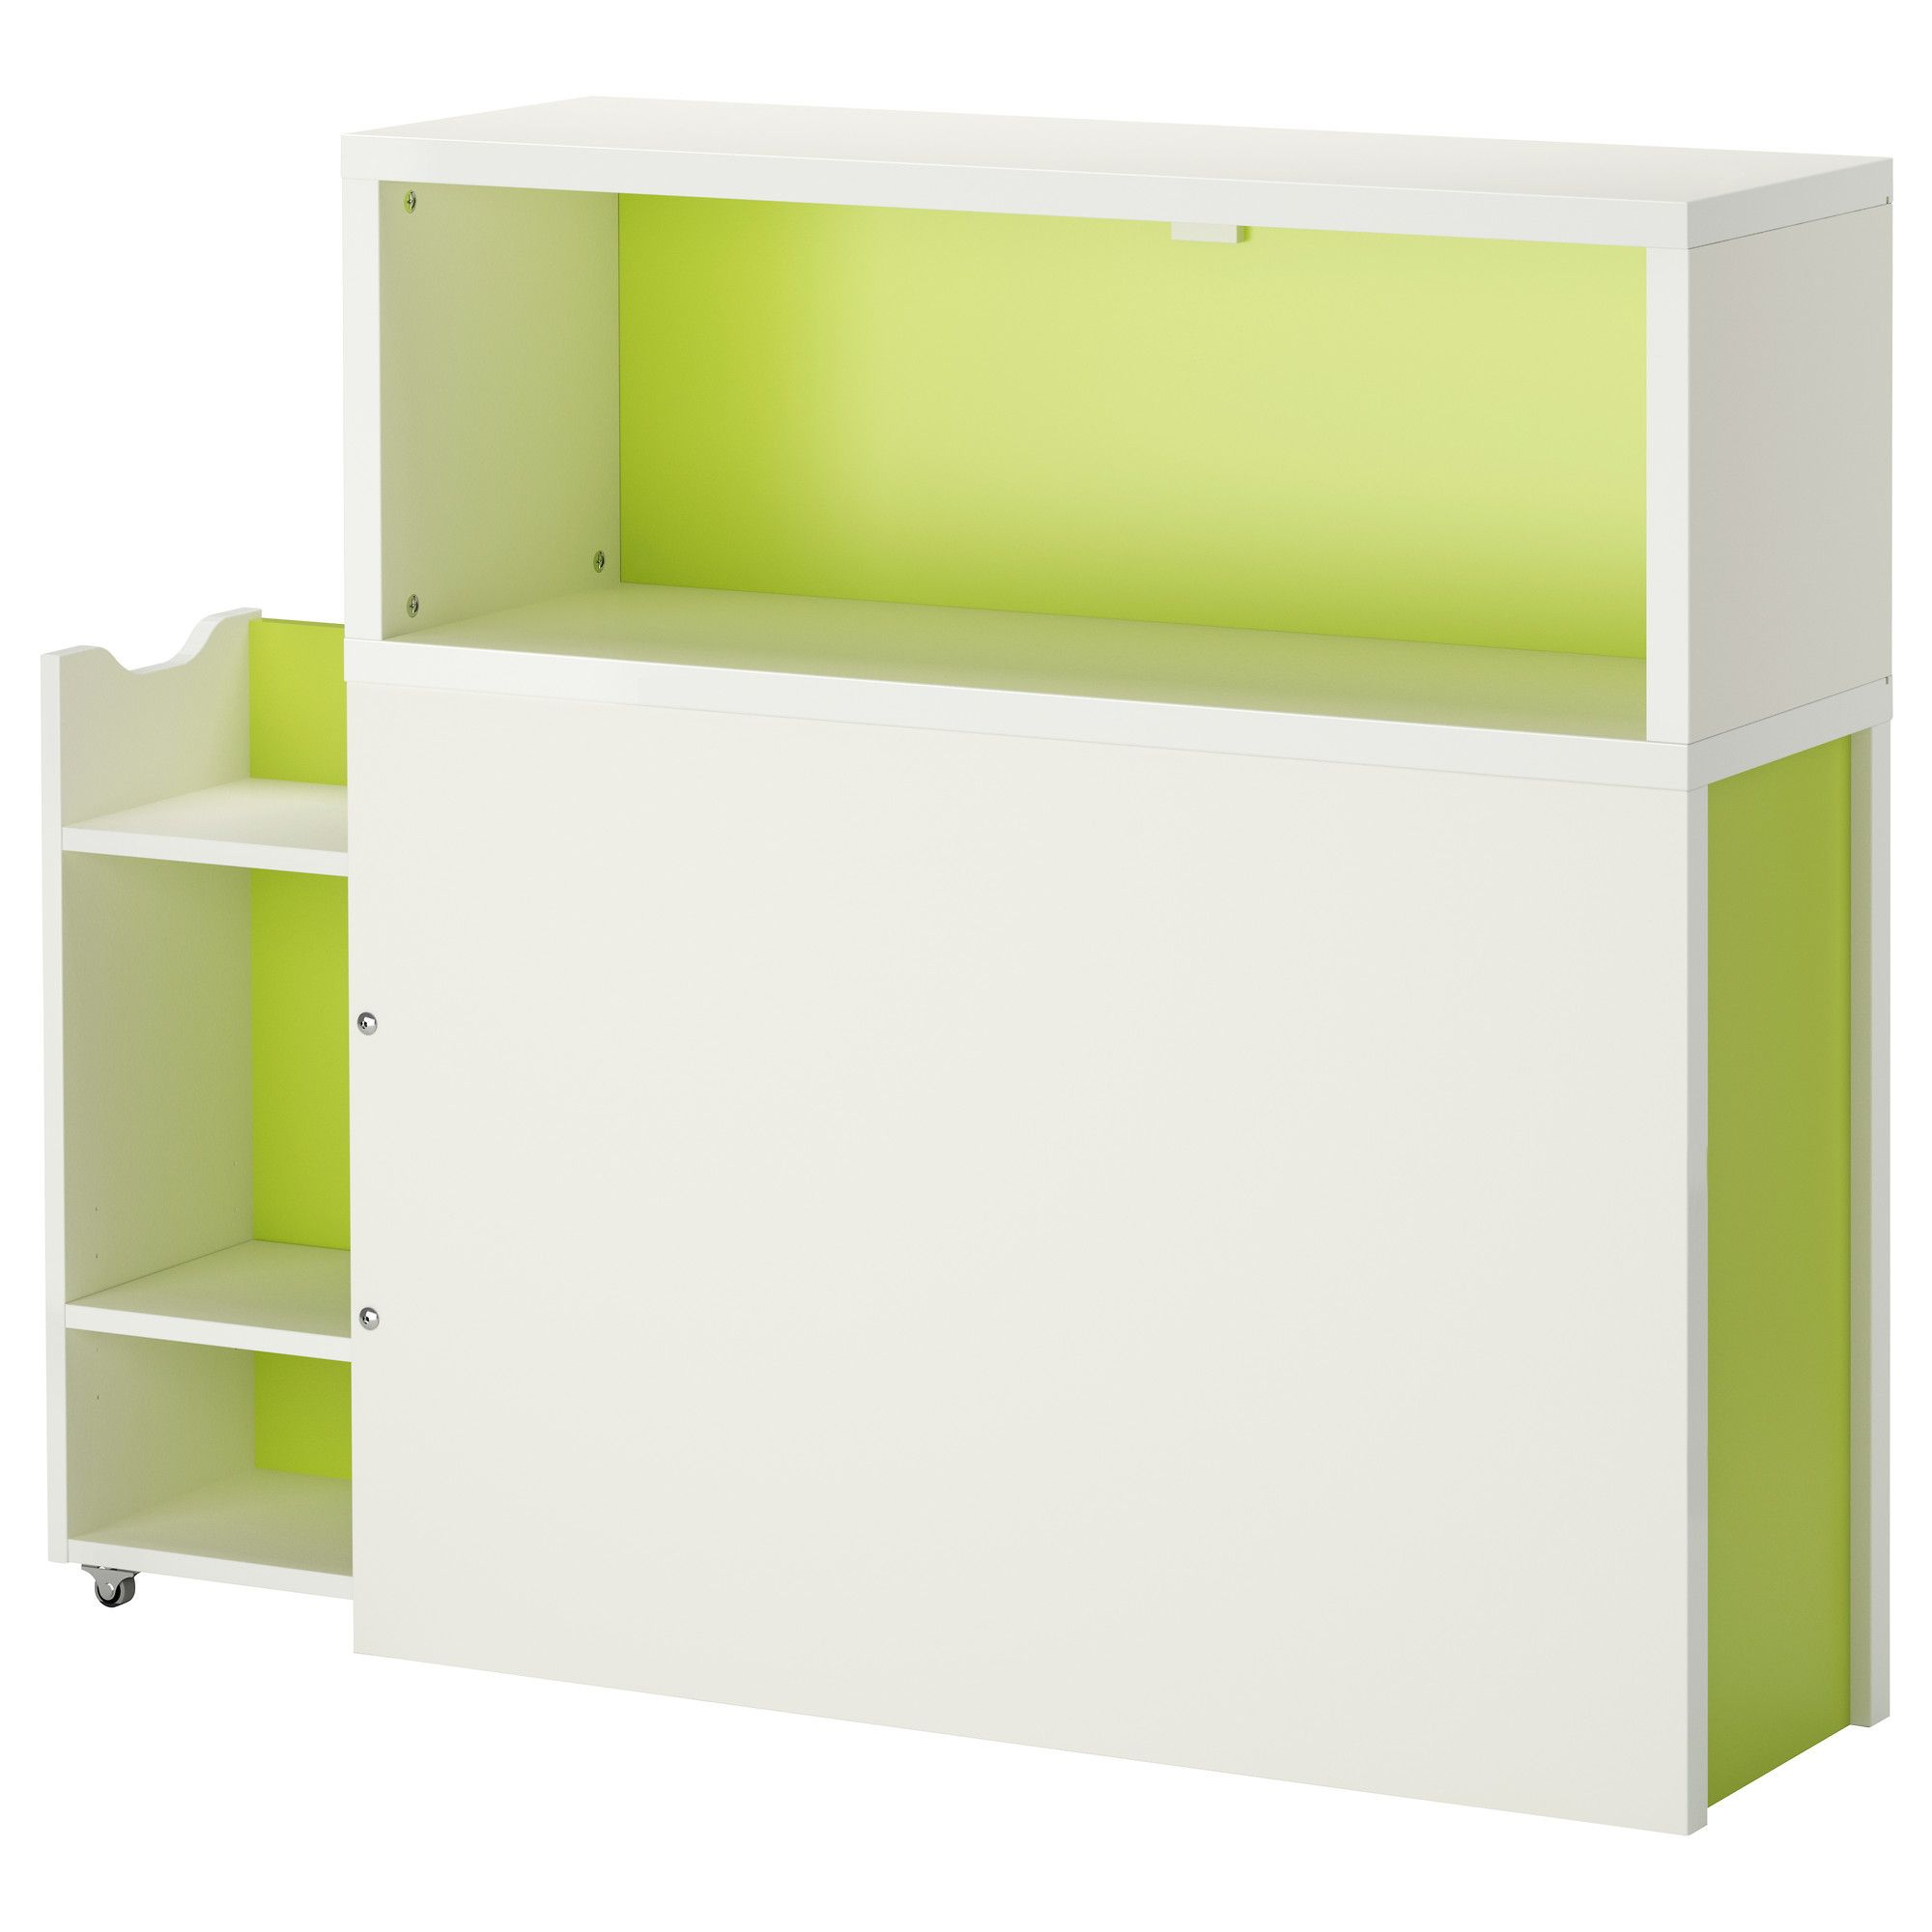 flaxa headboard with storage compartment ikea can these be hacked into a king bed - Kopfteil Plant Knig